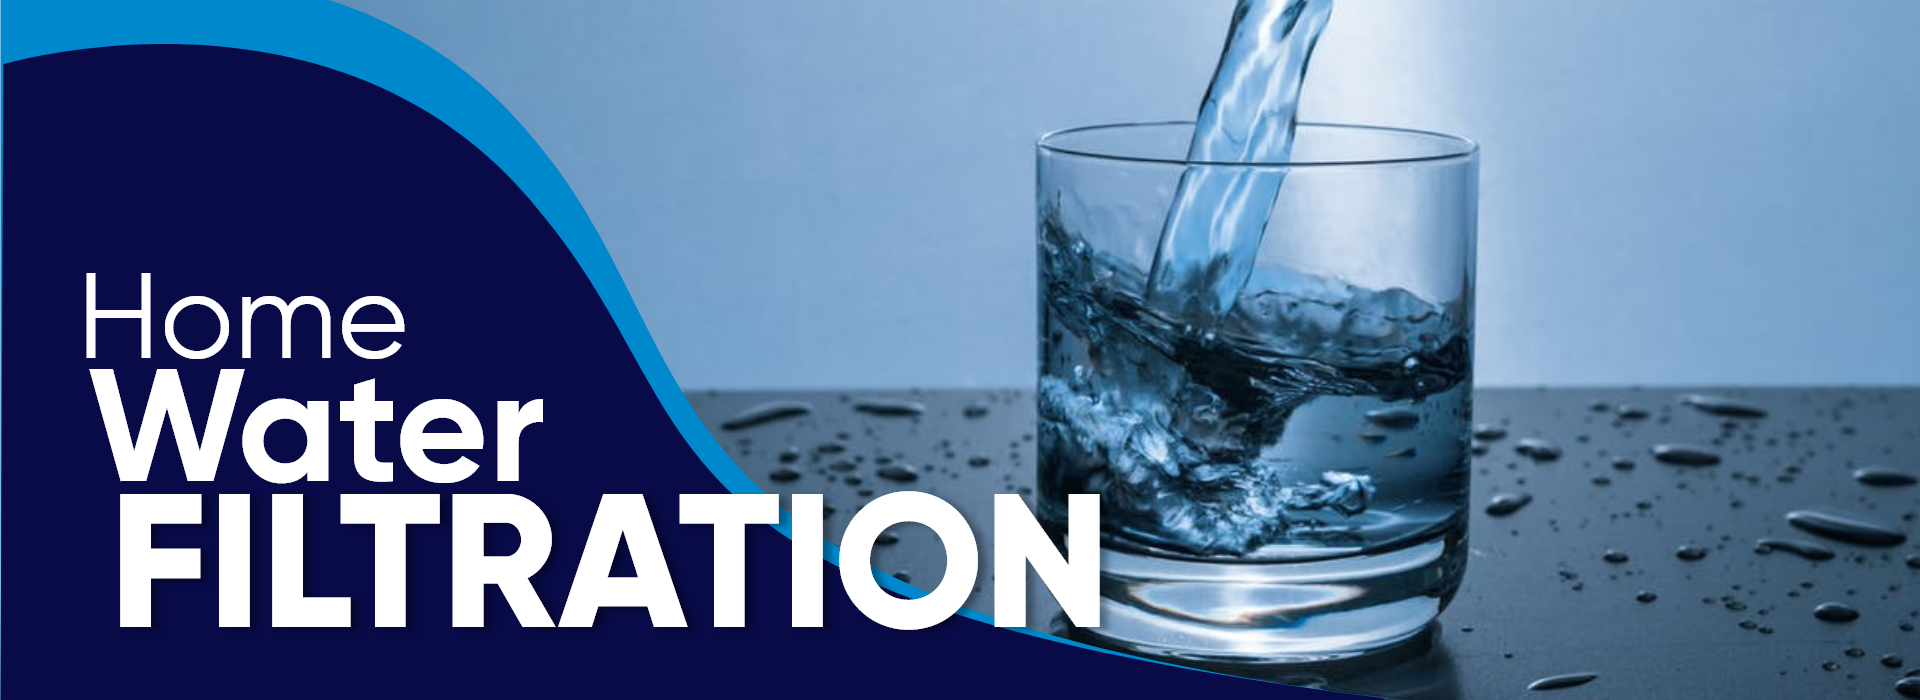 Home_water_Filtration_Slider